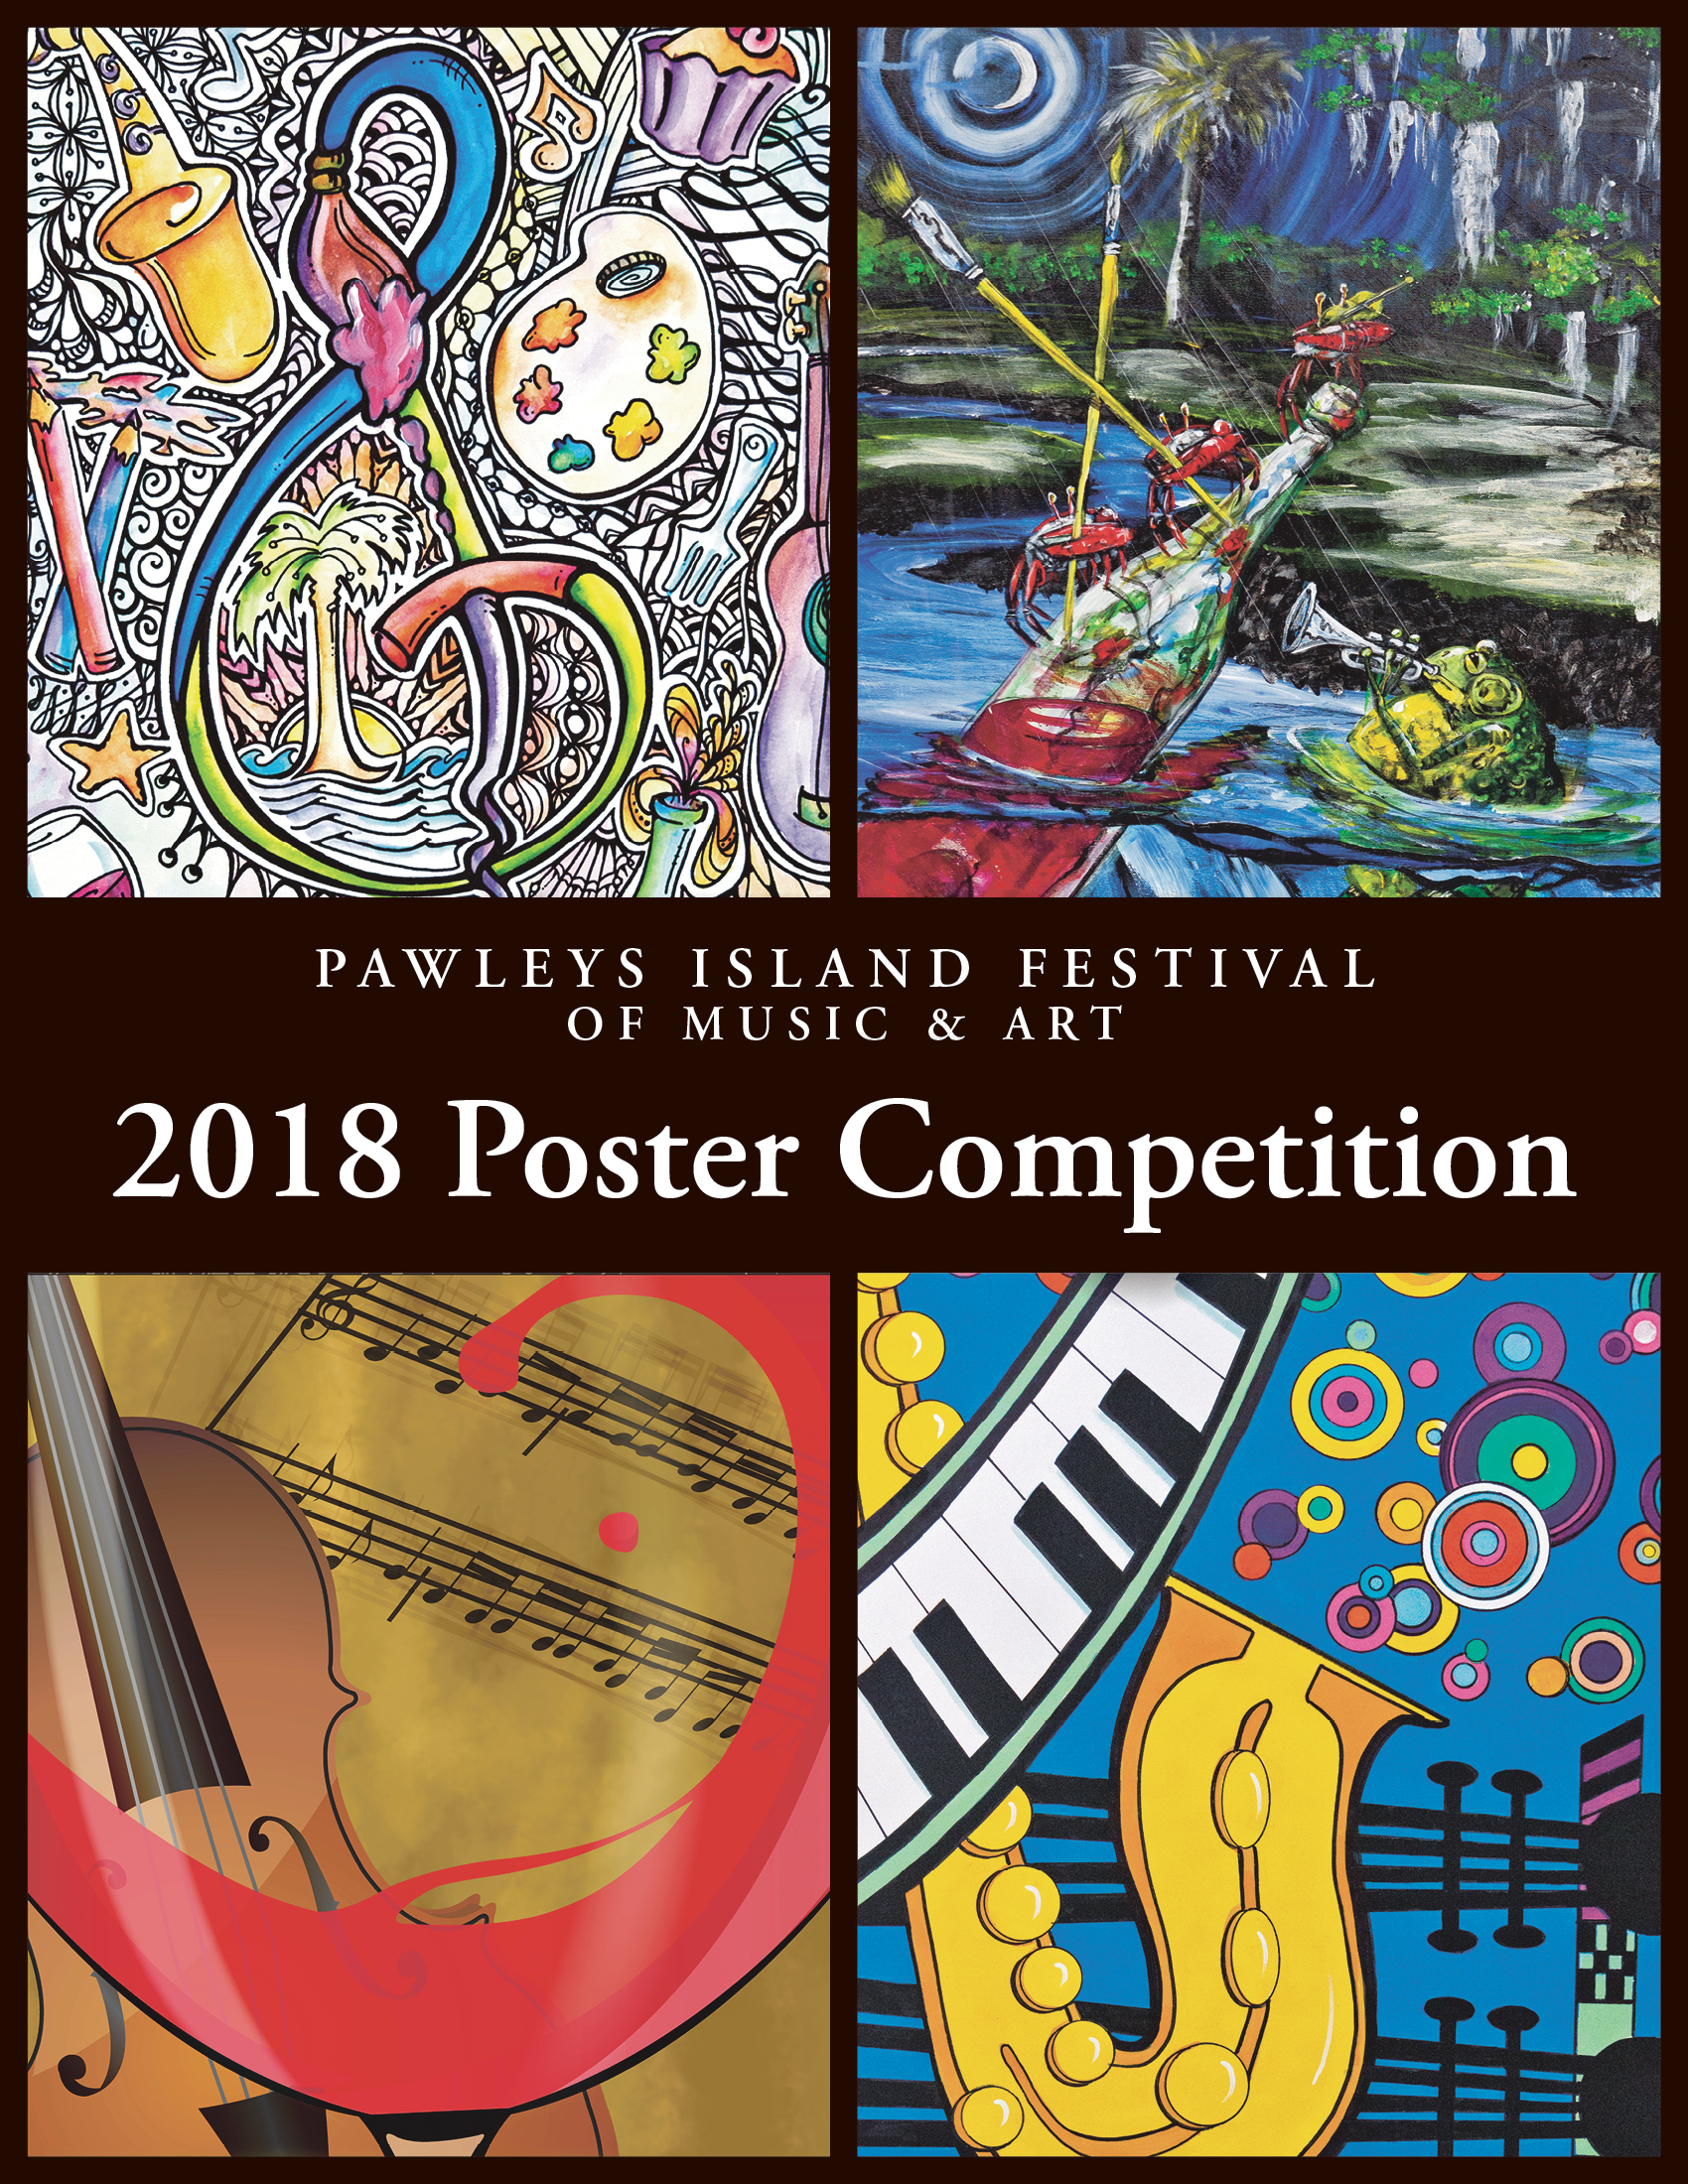 Pawleys island festival of music art calling for entries for the 2018 pawleys island festival of music art poster contest nvjuhfo Gallery